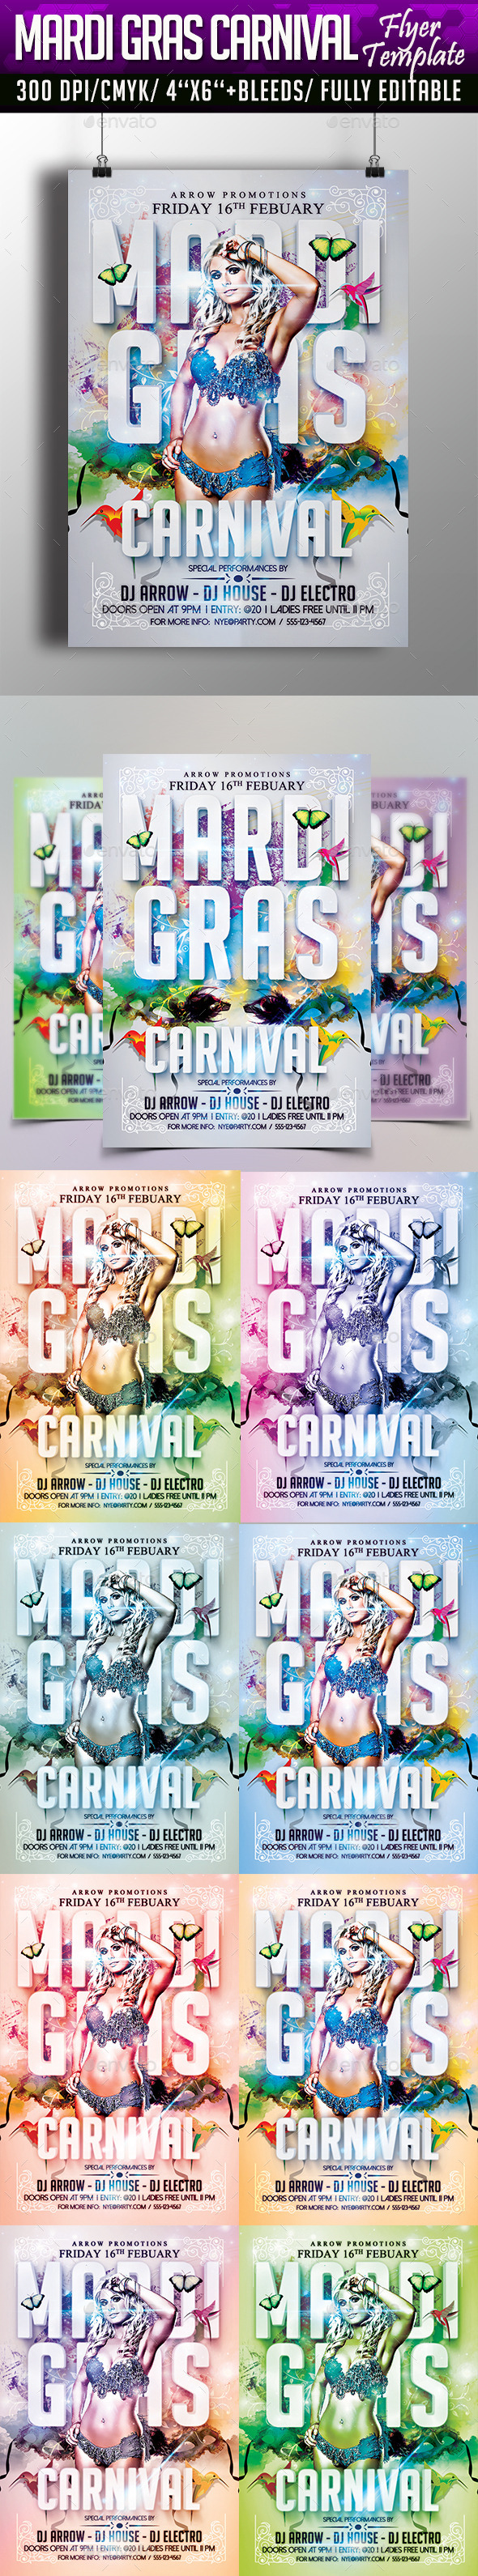 Mardi Gras Carnival Flyer Template - Clubs & Parties Events